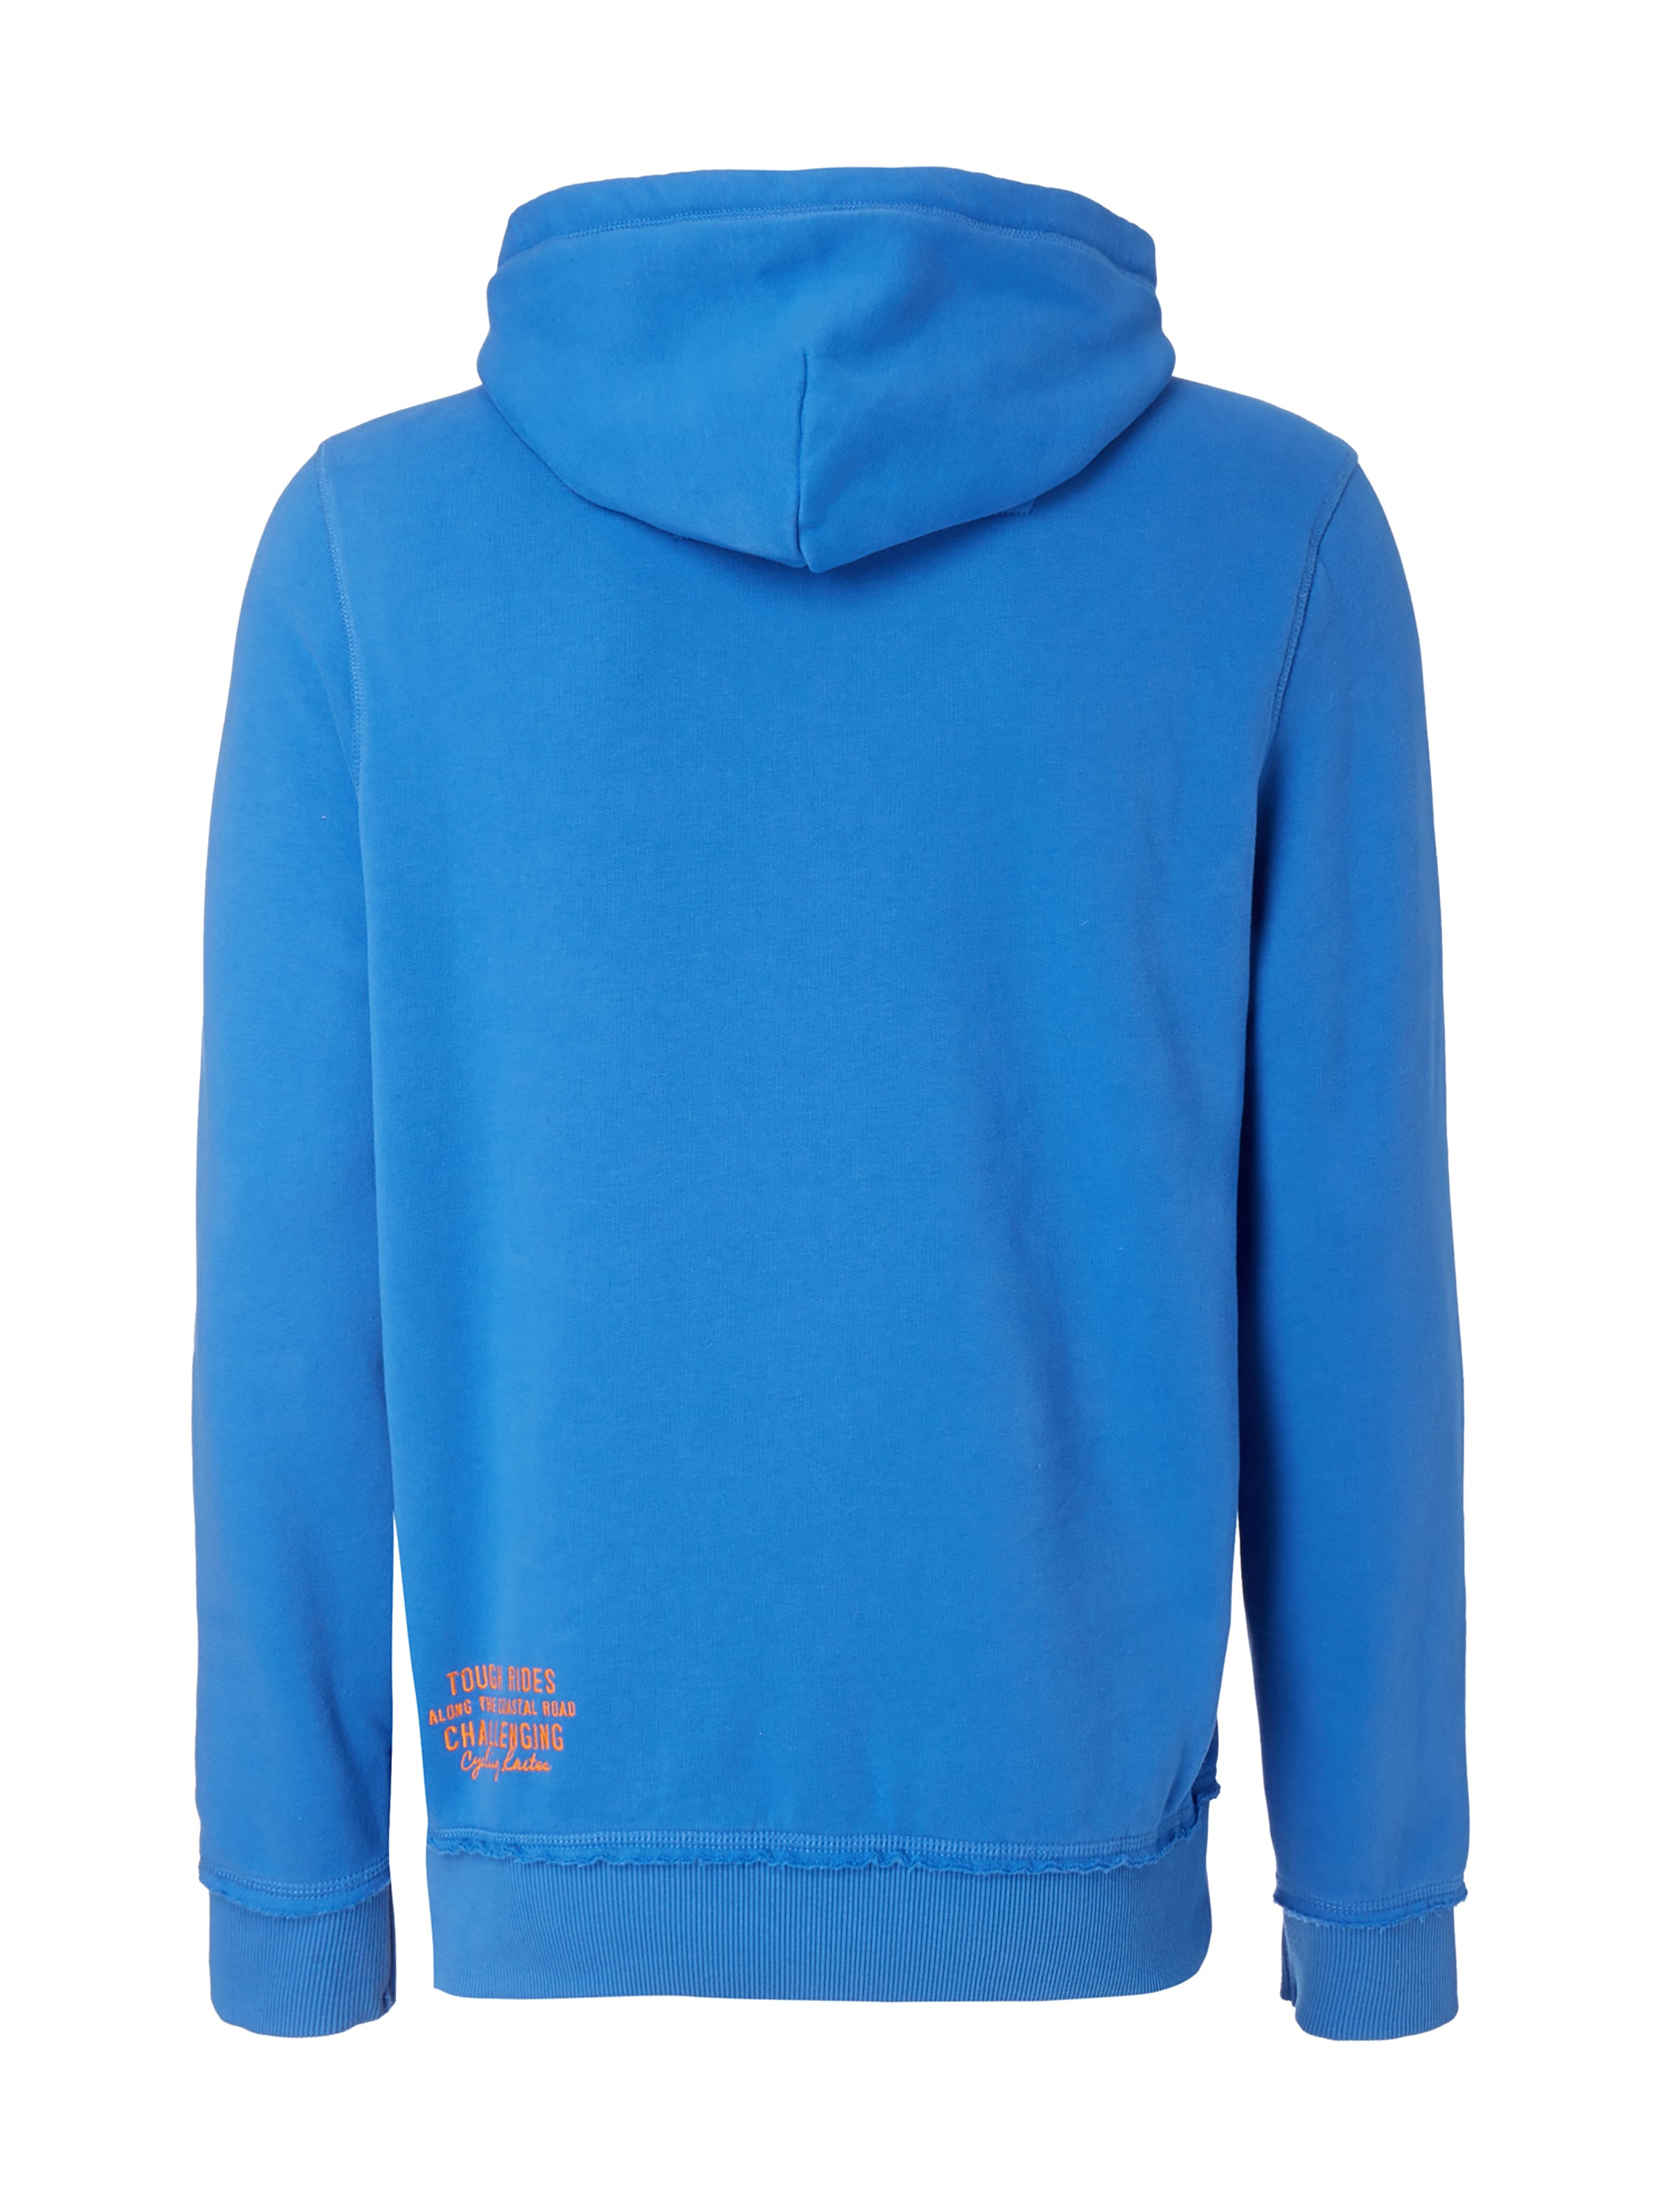 camp david hoodie mit logo applikation in blau t rkis online kaufen 9678624 p c online shop. Black Bedroom Furniture Sets. Home Design Ideas